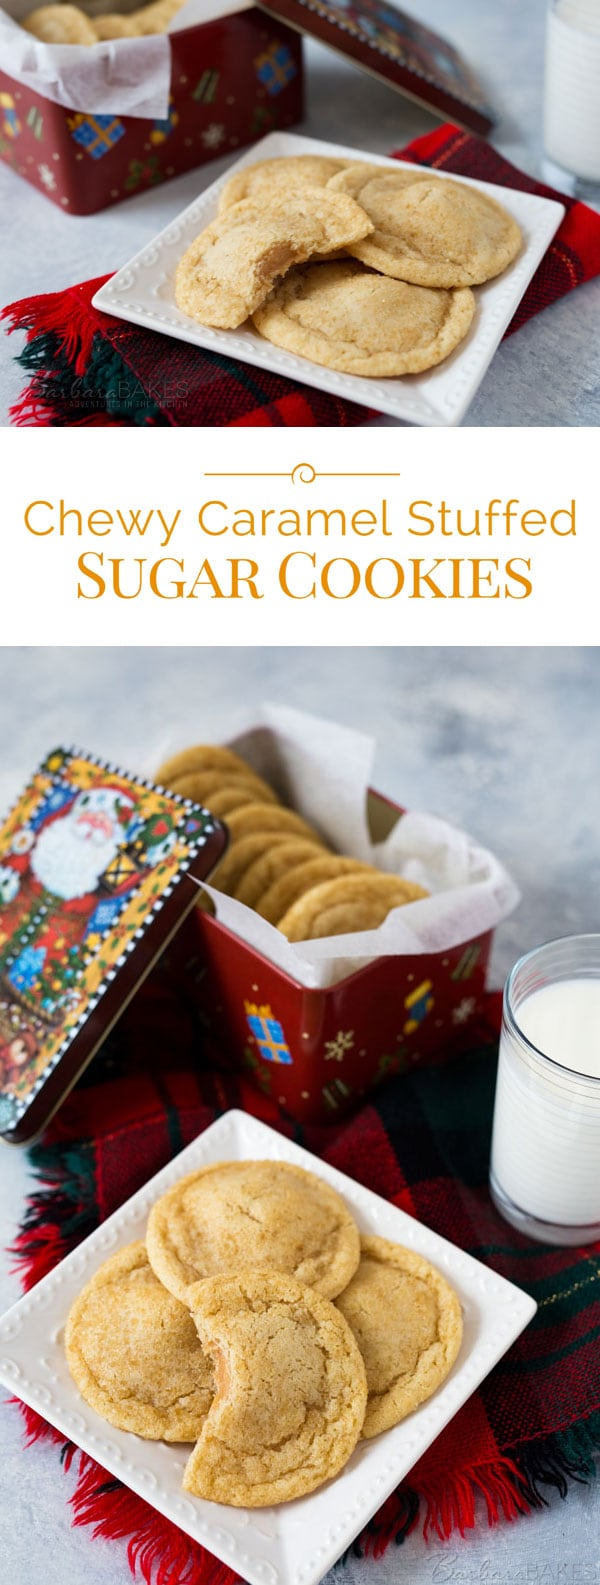 Chewy-Caramel-Stuffed-Sugar-Cookies-Collage-Barbara-Bakes